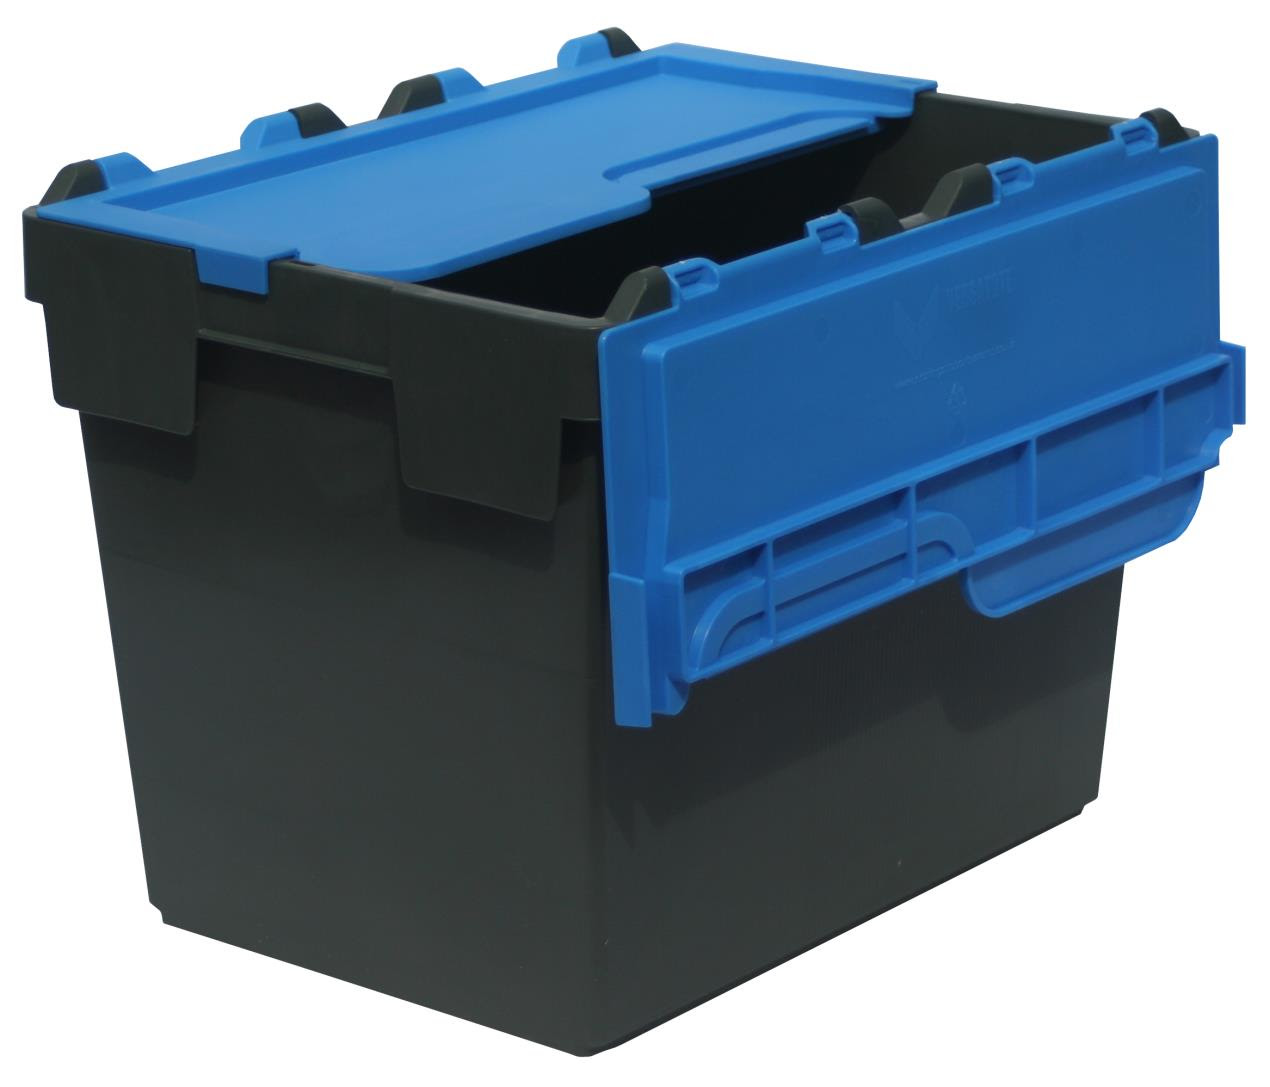 The smallest 28-litre attached lid container the GO ALC 43300